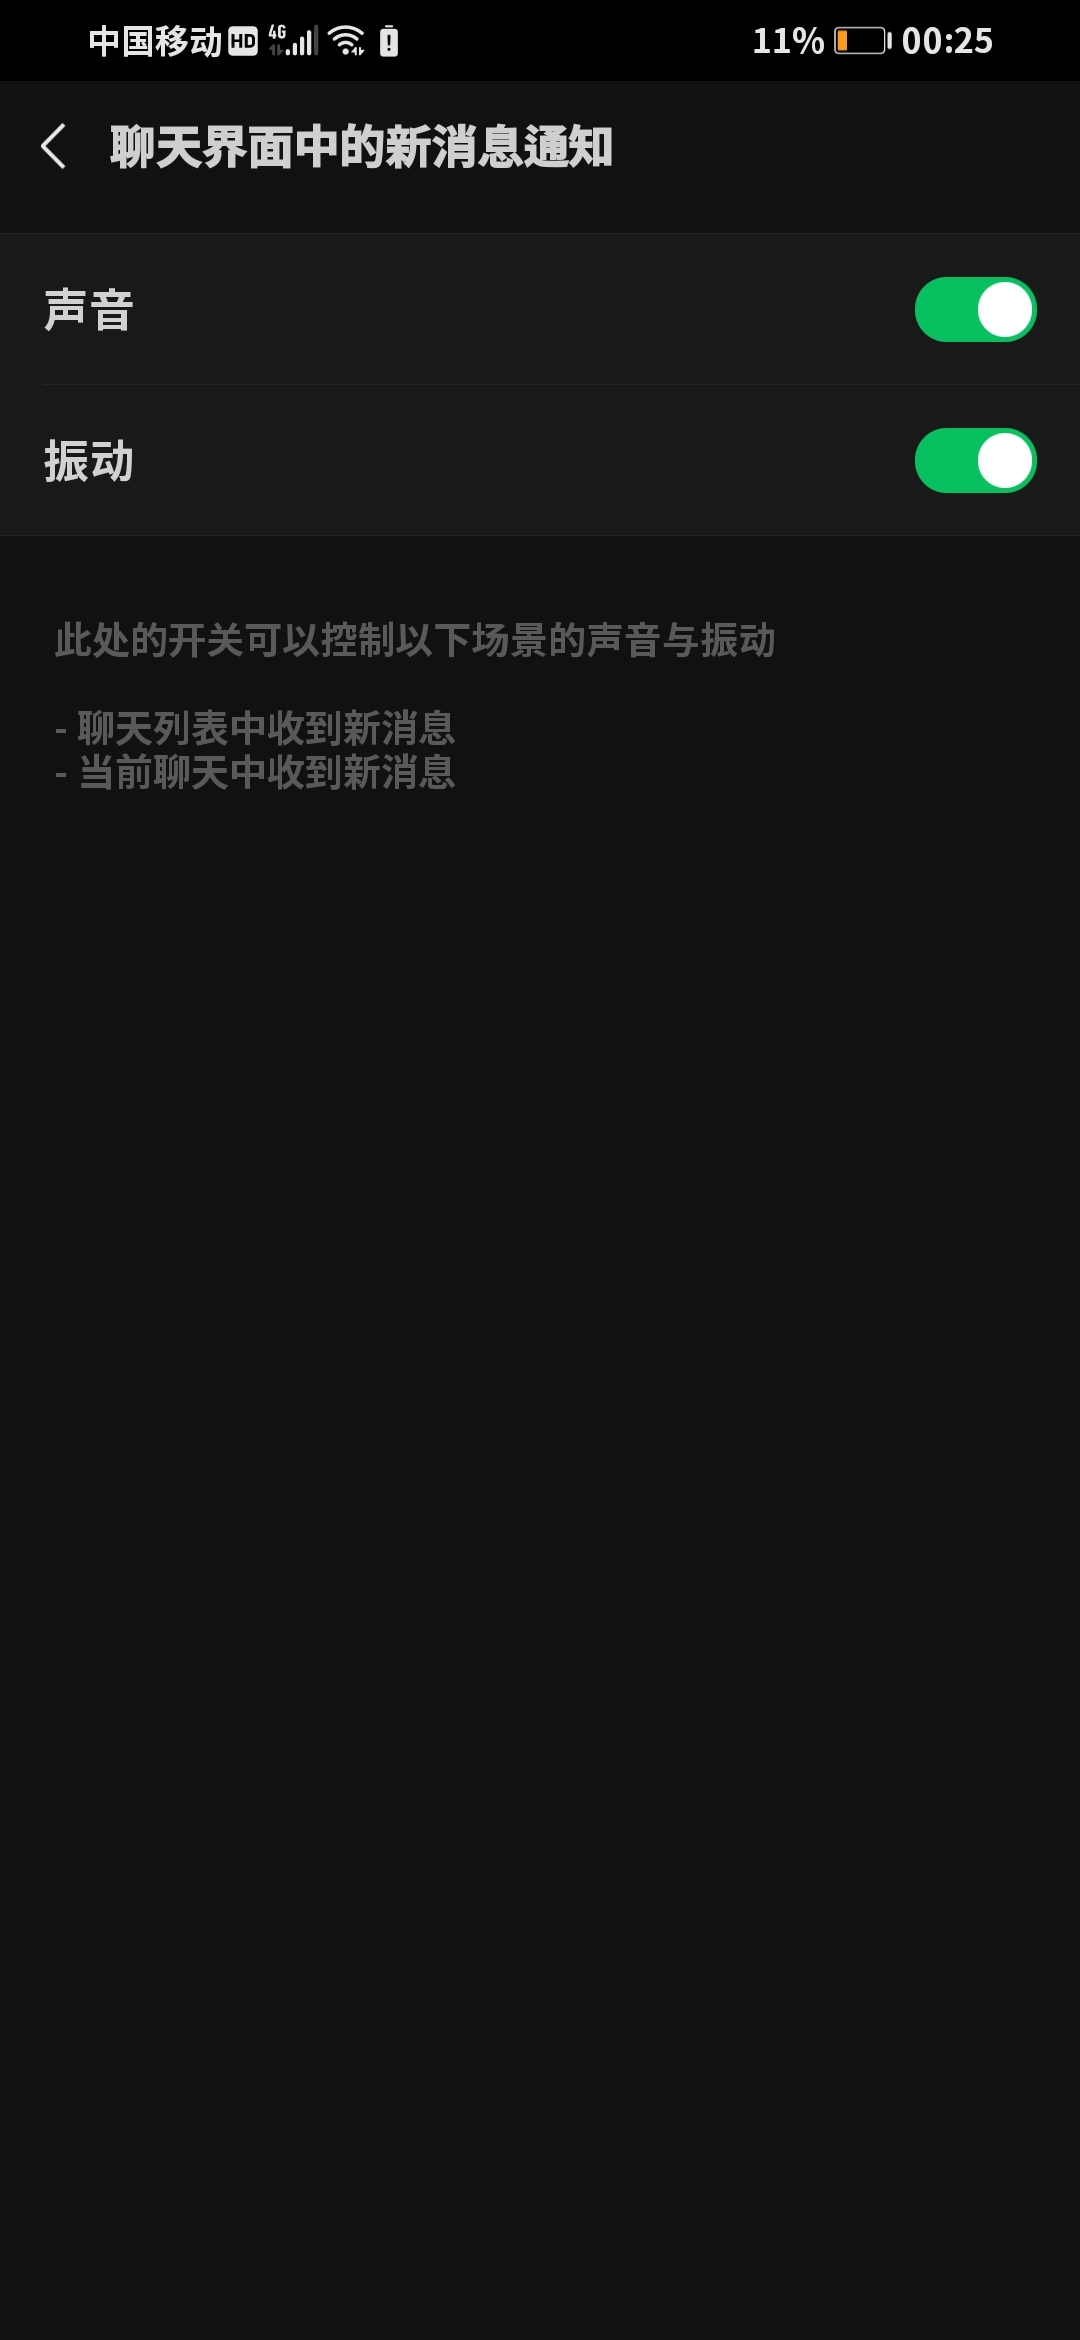 Screenshot_20200523_002521_com.tencent.mm.jpg